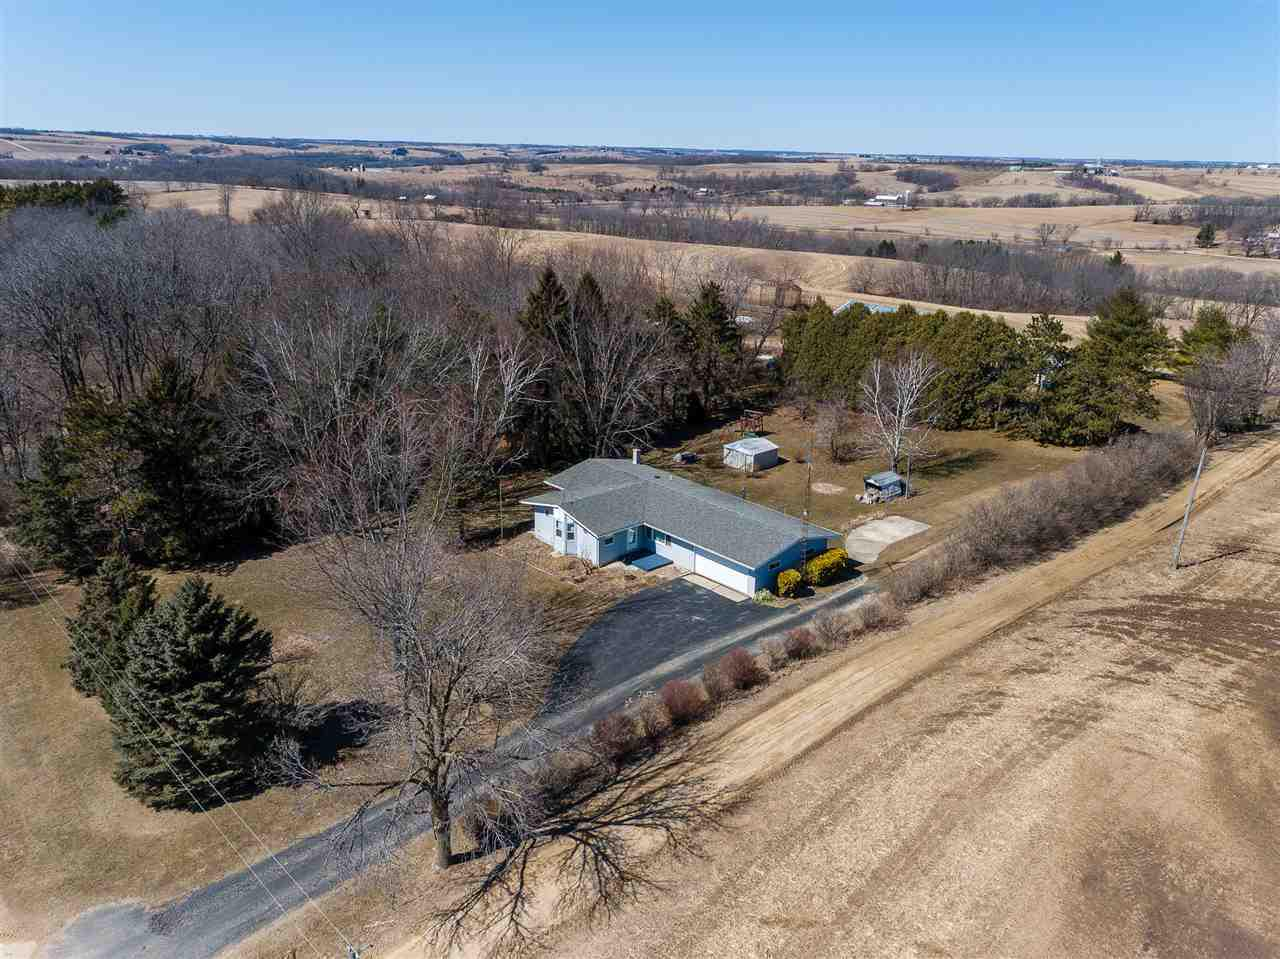 VRP $350,000-$375,000 - Peace & tranquility abound in this sweet 44-acre farmette where you can have horses & other animals! Approx. 32 acres of tillable land! 24x80 outbuilding w/loft & 2 horse stalls plus 3 additional smaller storage sheds! Bright ranch w/open floor plan & vaulted ceilings! Welcoming foyer w/lovely custom-built-in buffet! Nicely-updated bathroom! Master bedroom features built-in bay window seat that opens for storage + attached bonus room that could be your walk-in closet! Enjoy the wildlife while relaxing on your back deck! Attached 2-car garage! All appliances & UHP included! Some exposure in lower level! Beautiful land!